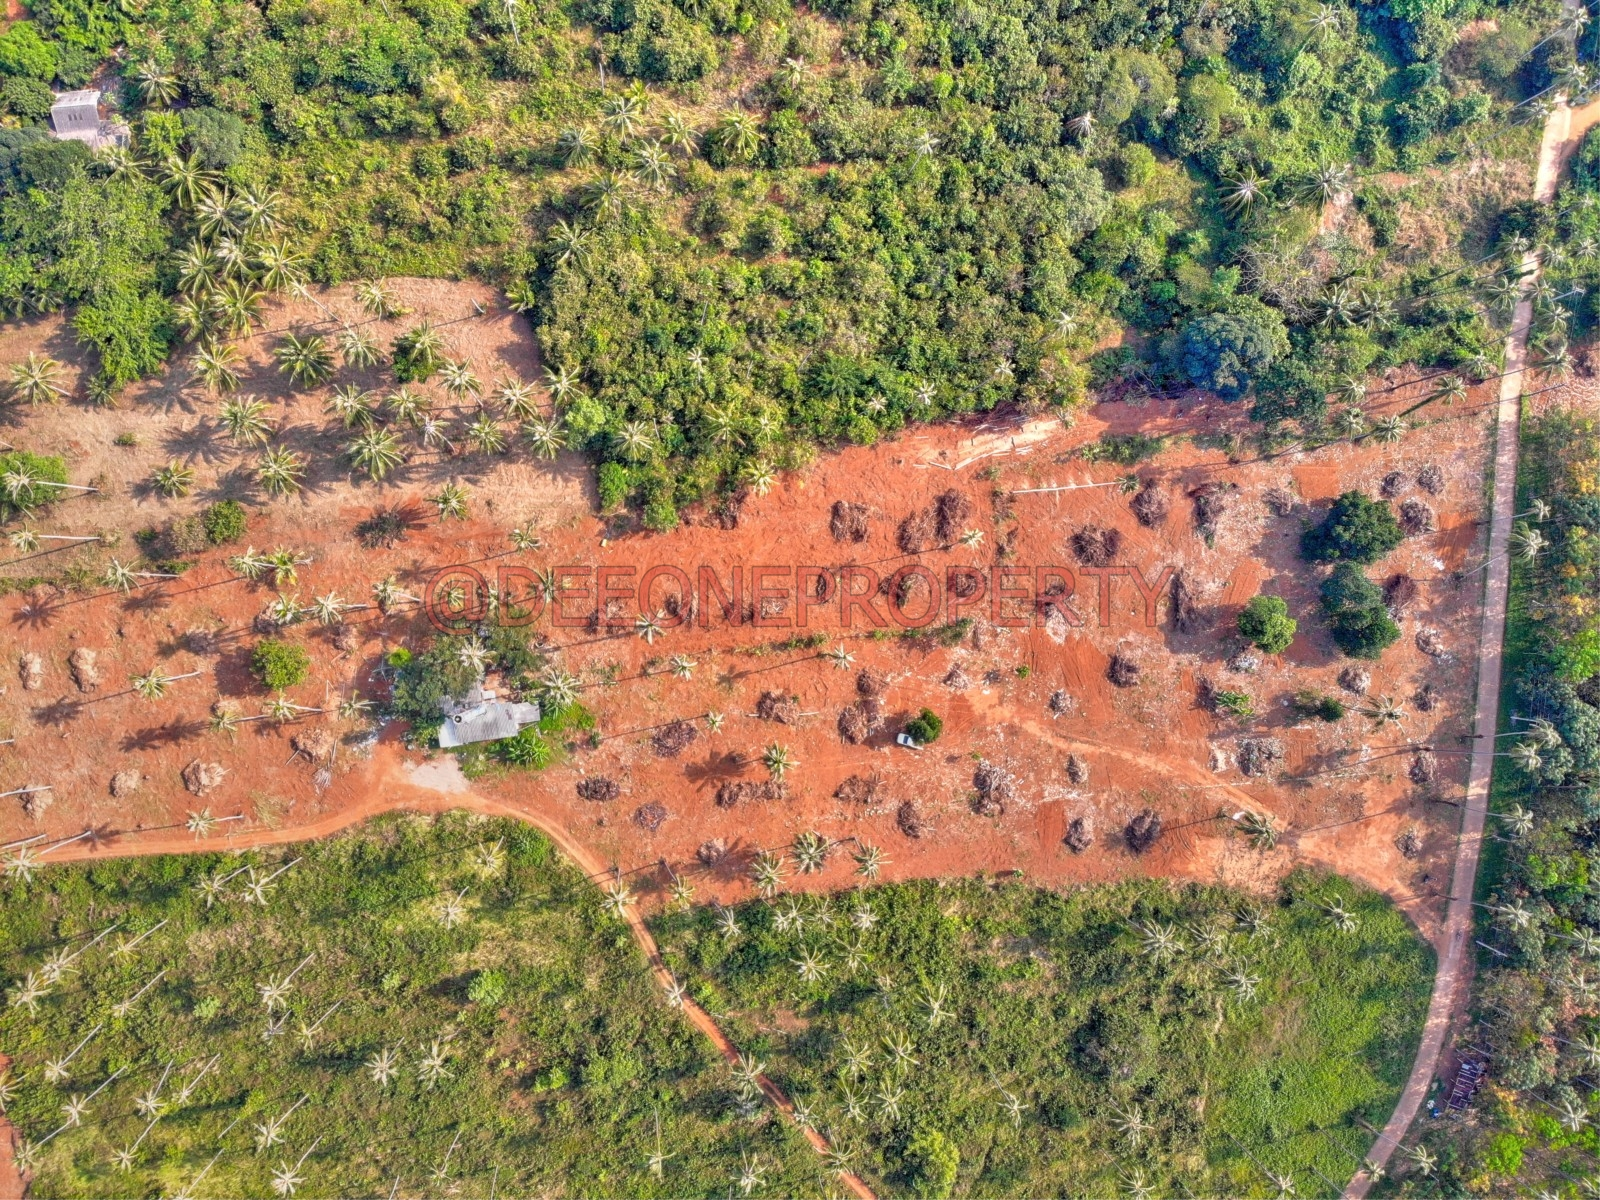 20 Rai Land to Split for Sale – Koh Mak